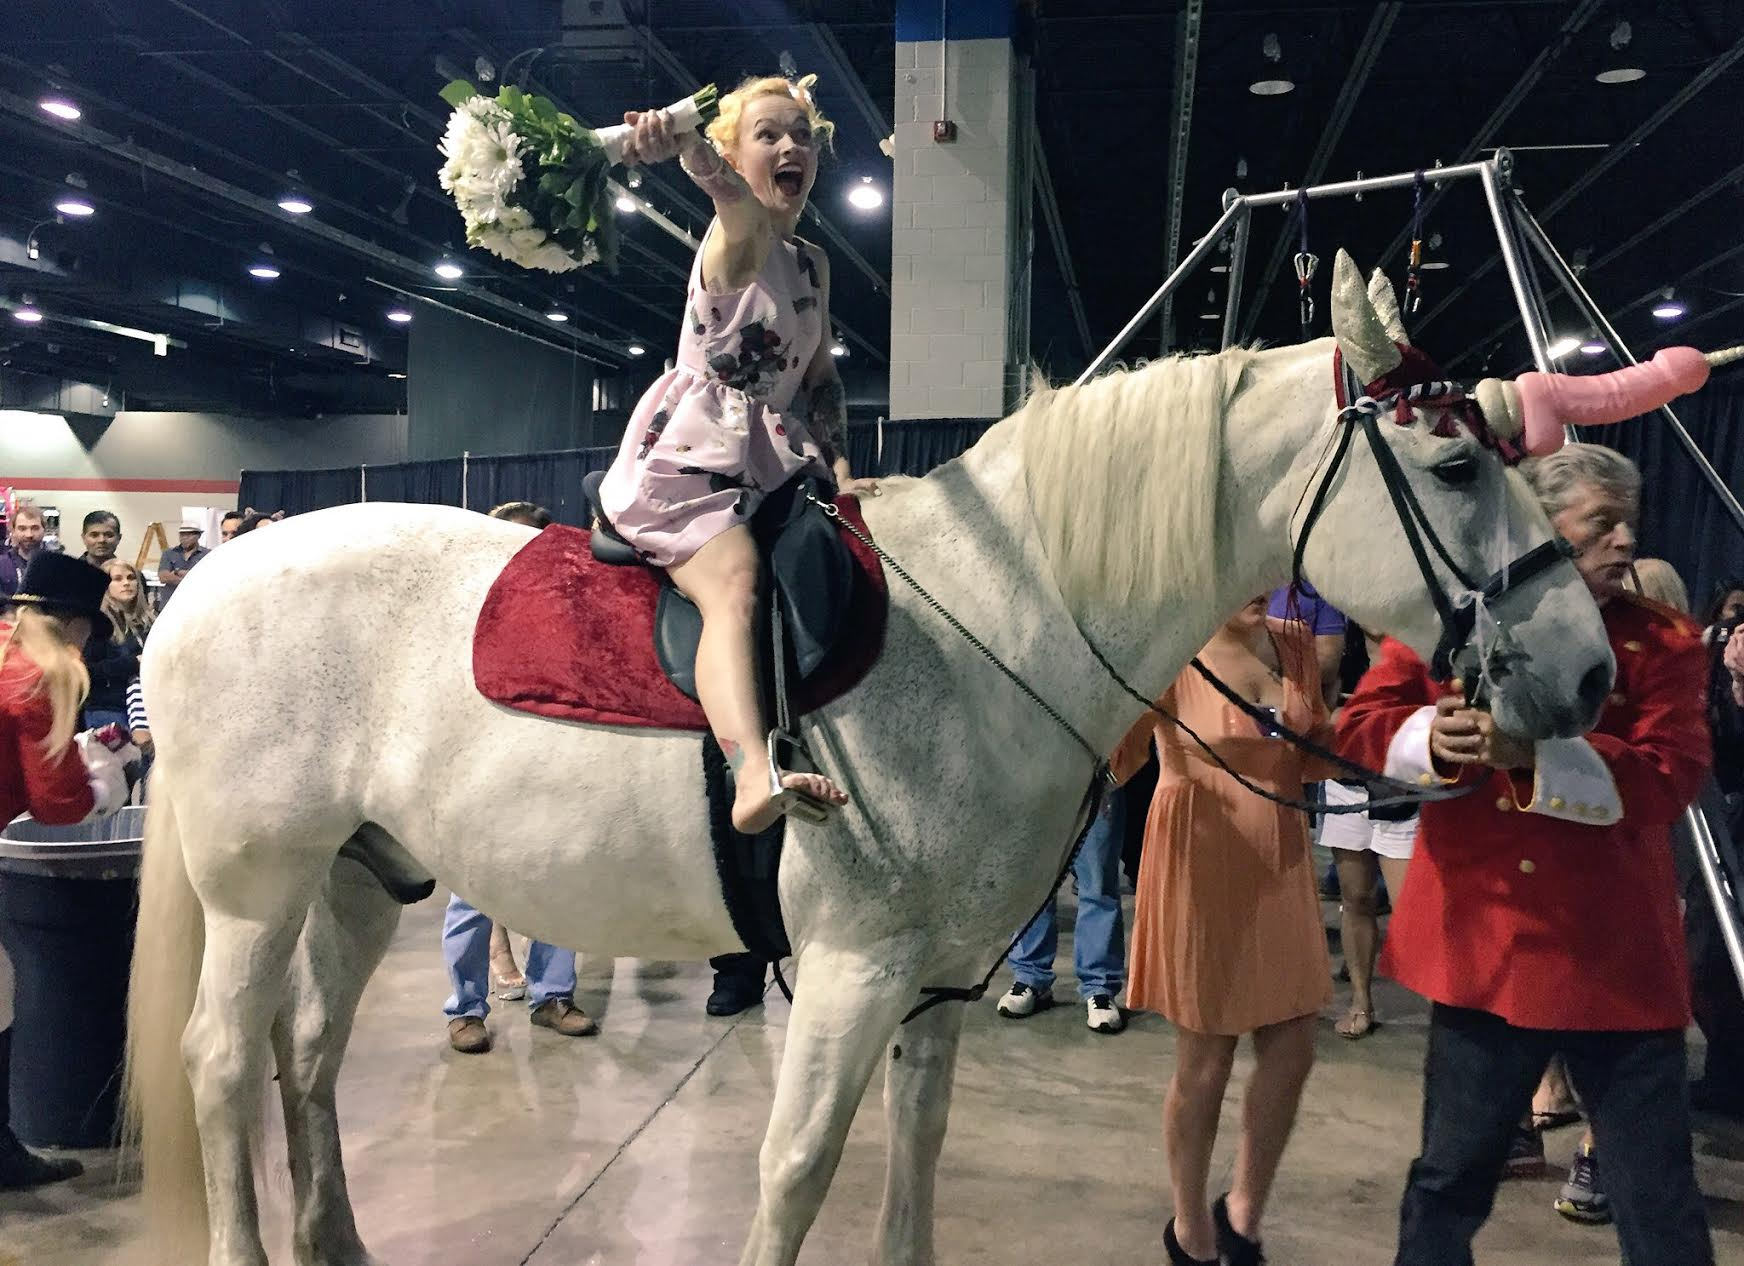 Adult film star Tita Cupcake DuJour on her penis unicorn as part of her wedding ceremony at Exxxotica